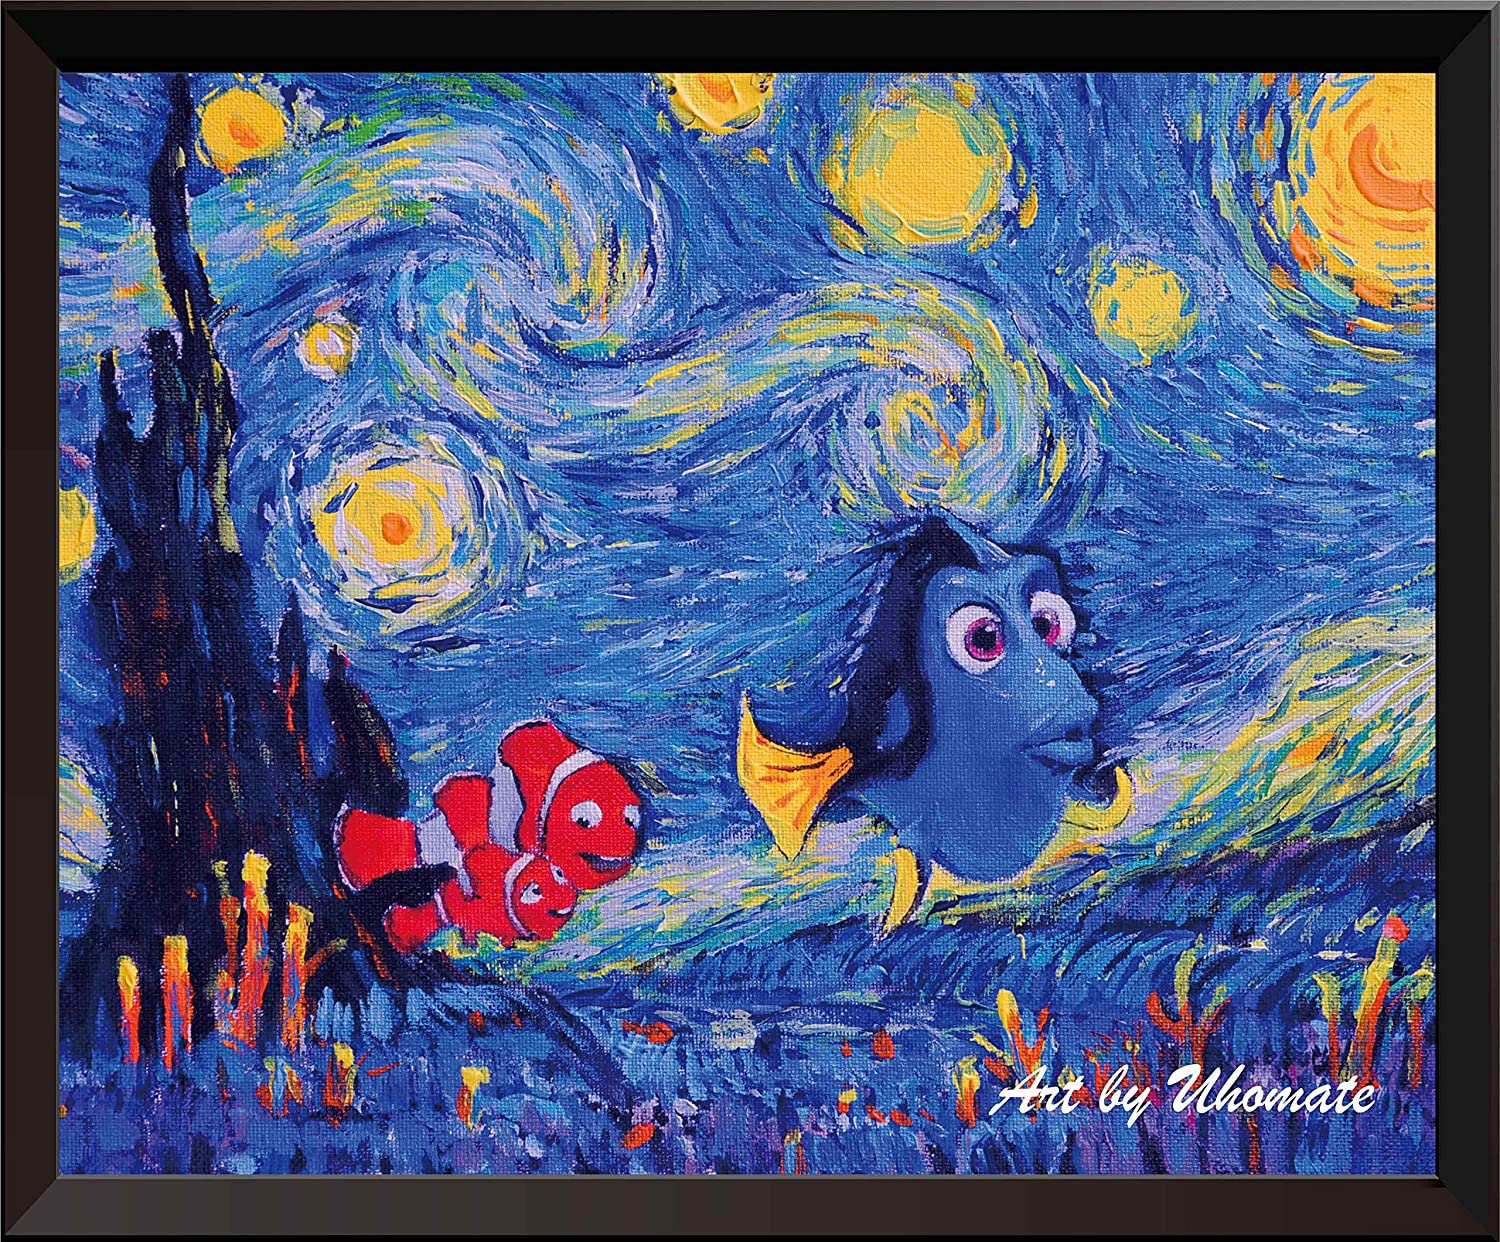 Uhomate Dory Finding Nemo Inspired Vincent Van Gogh Starry Night Posters Home Canvas Wall Art Baby Gift Nursery Decor Living Room Wall Decor A006 (8X10 inch)